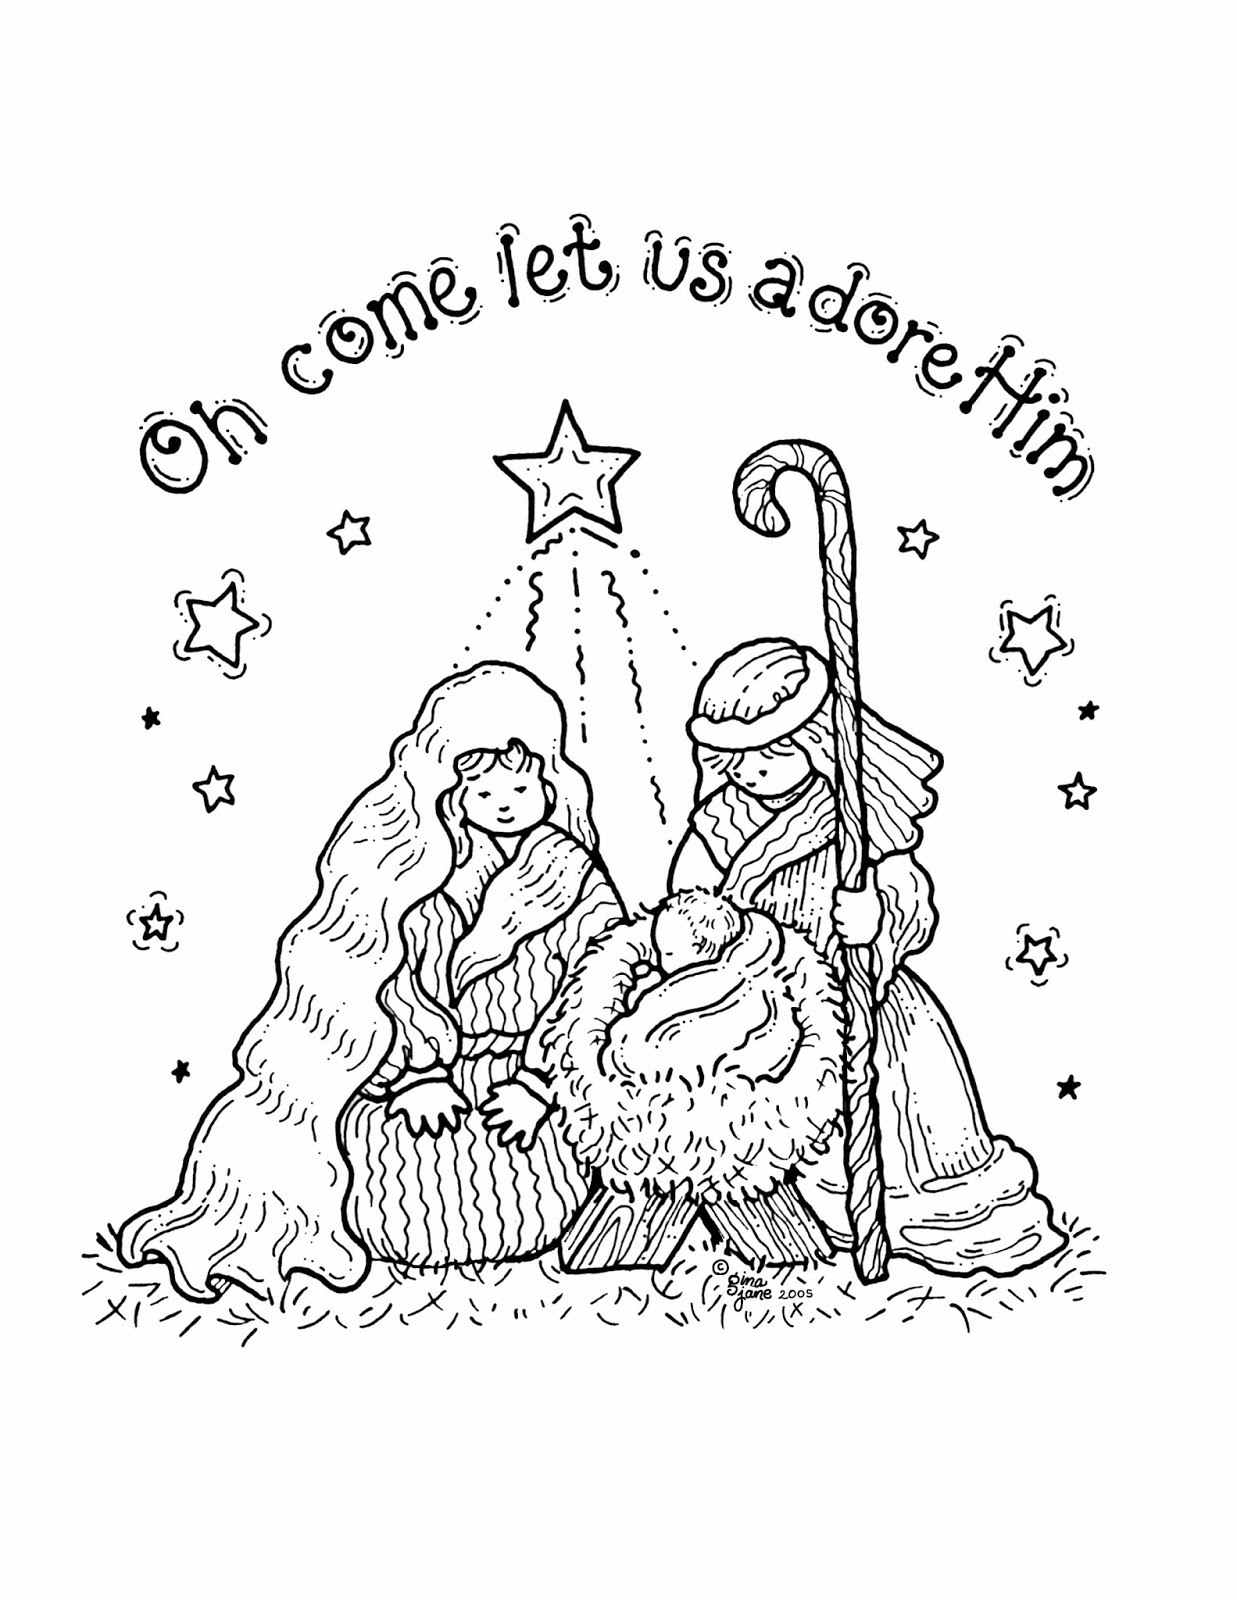 nativity coloring sheet scenery of nativity in jesus christ coloring page scenery nativity sheet coloring